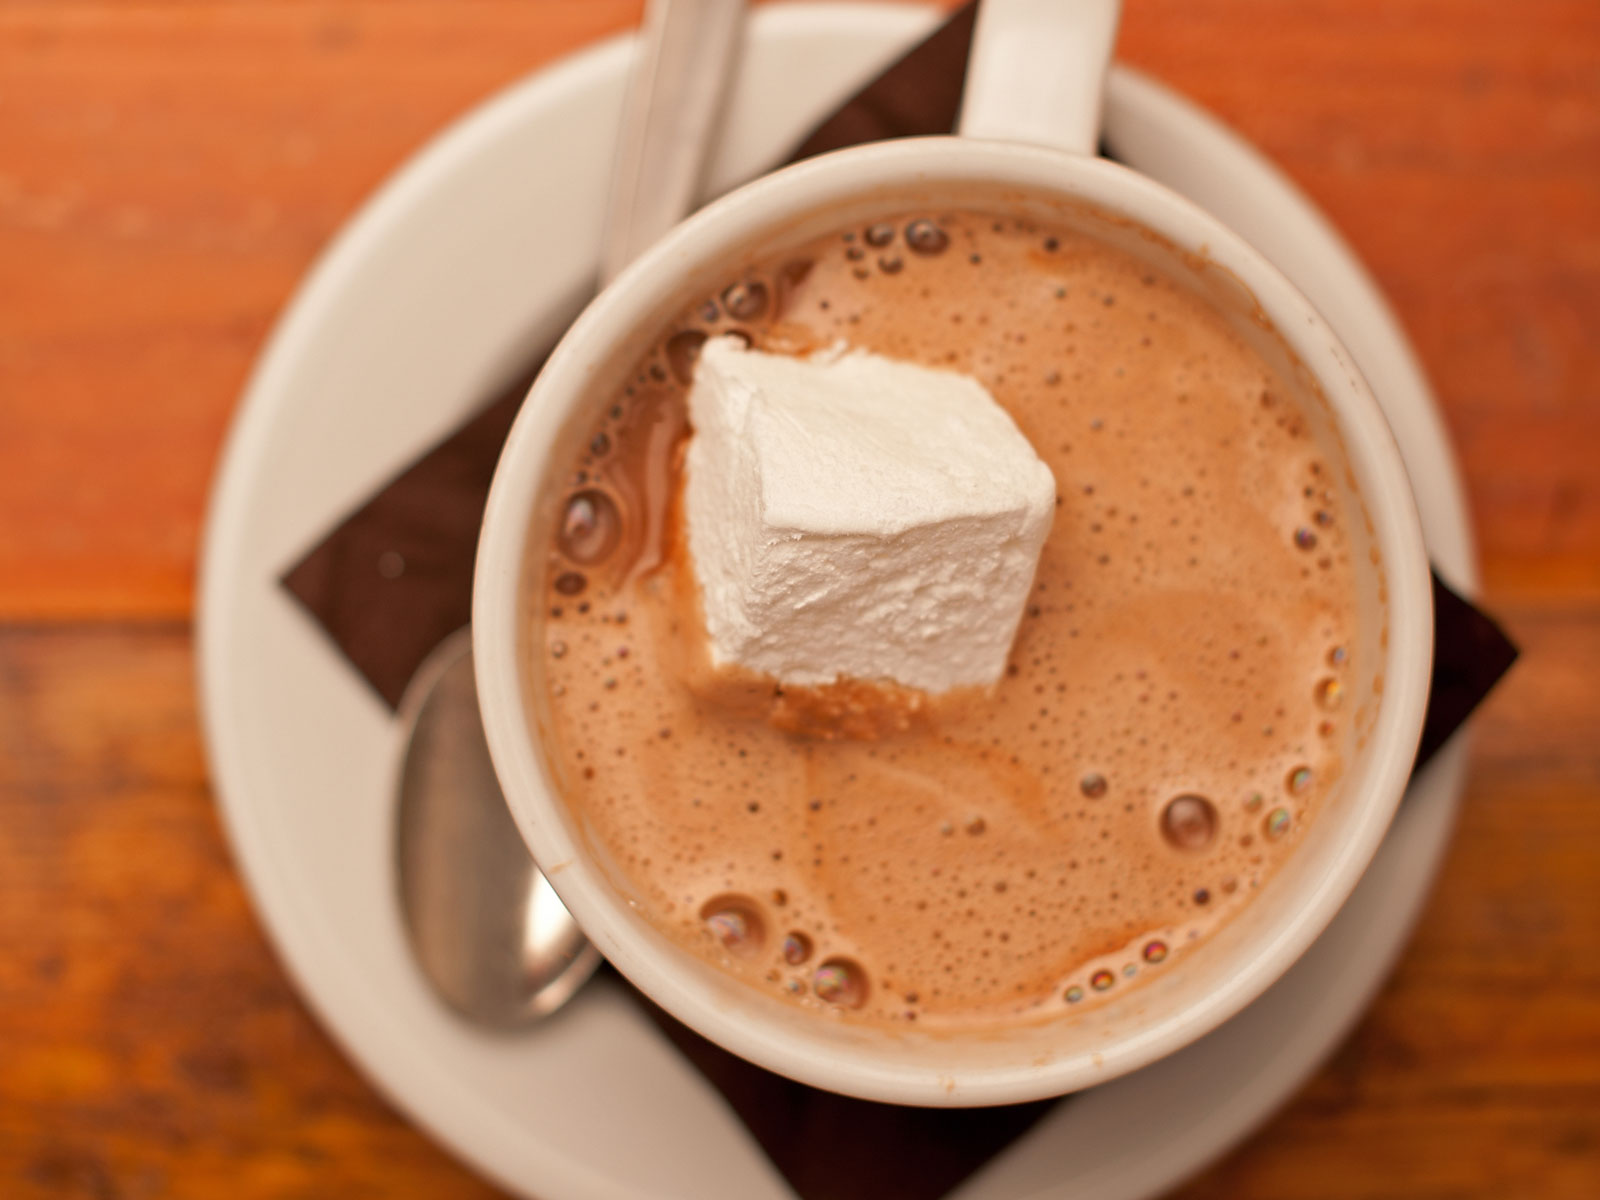 $8 Chai Hot Chocolate at Mindy's Hot Chocolate